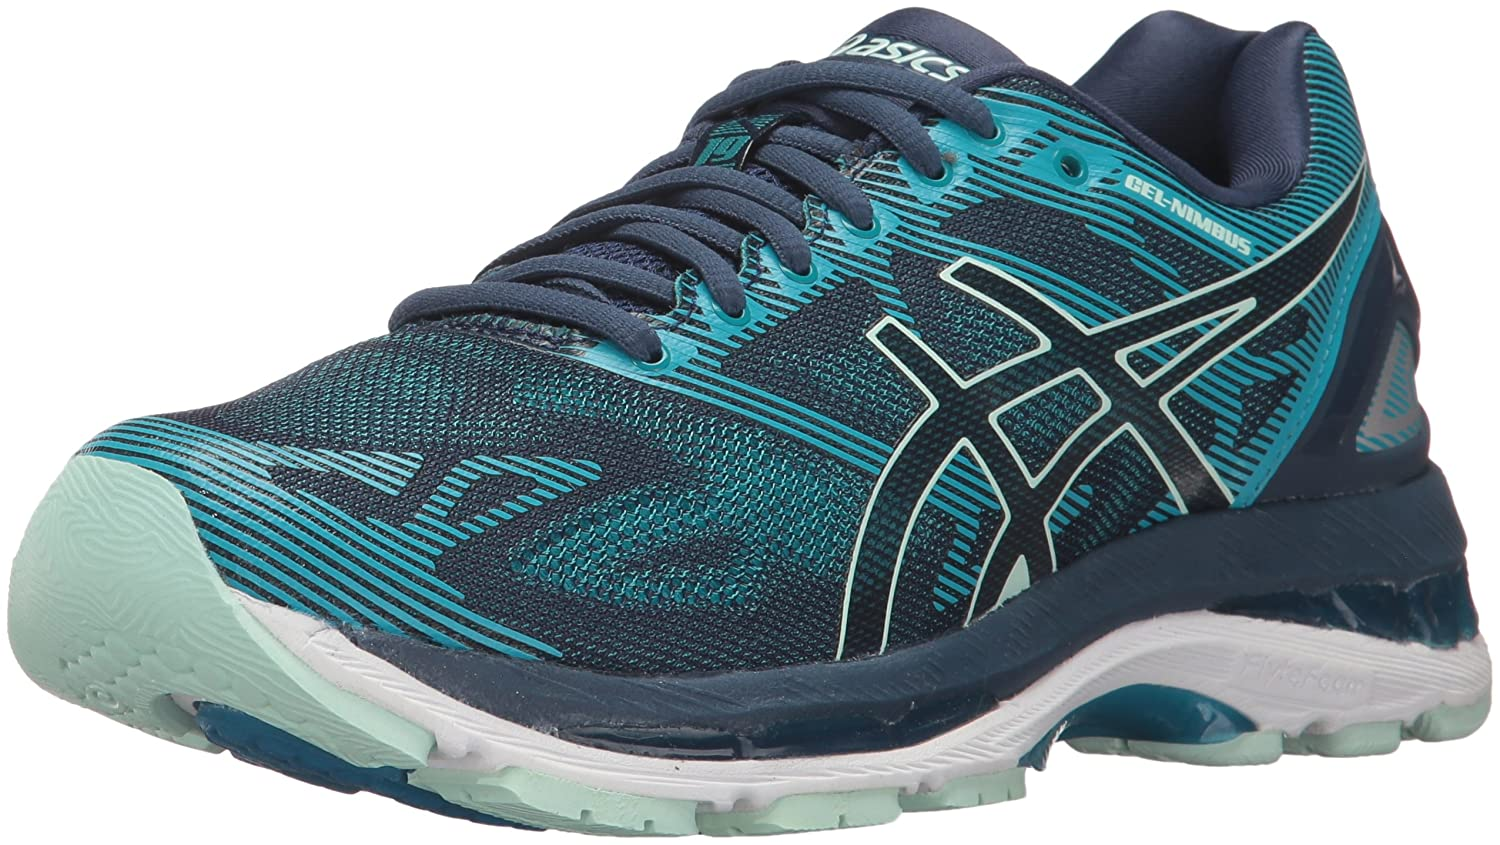 ASICS Women's Gel-Nimbus 19 Running Shoe B01N8SXTFN 7.5 B(M) US|Insignia Blue/Glacier Sea/Crystal Blue